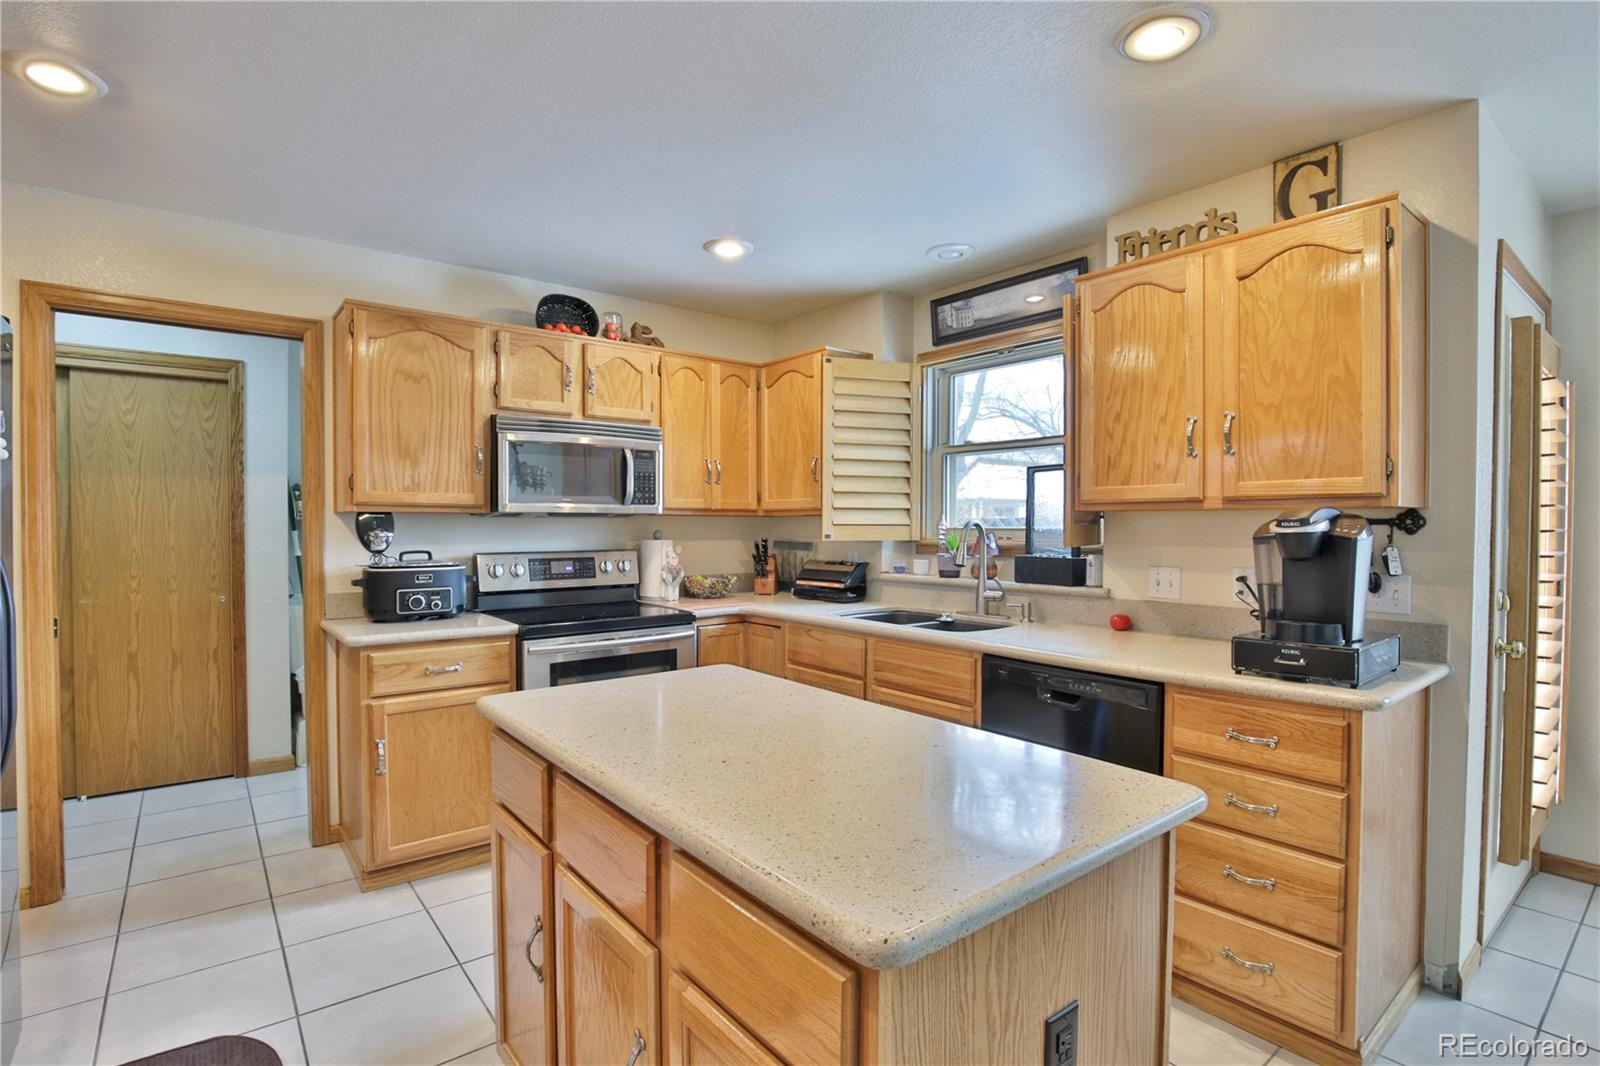 MLS# 5977333 - 3 - 5187 Youngfield Court, Arvada, CO 80002